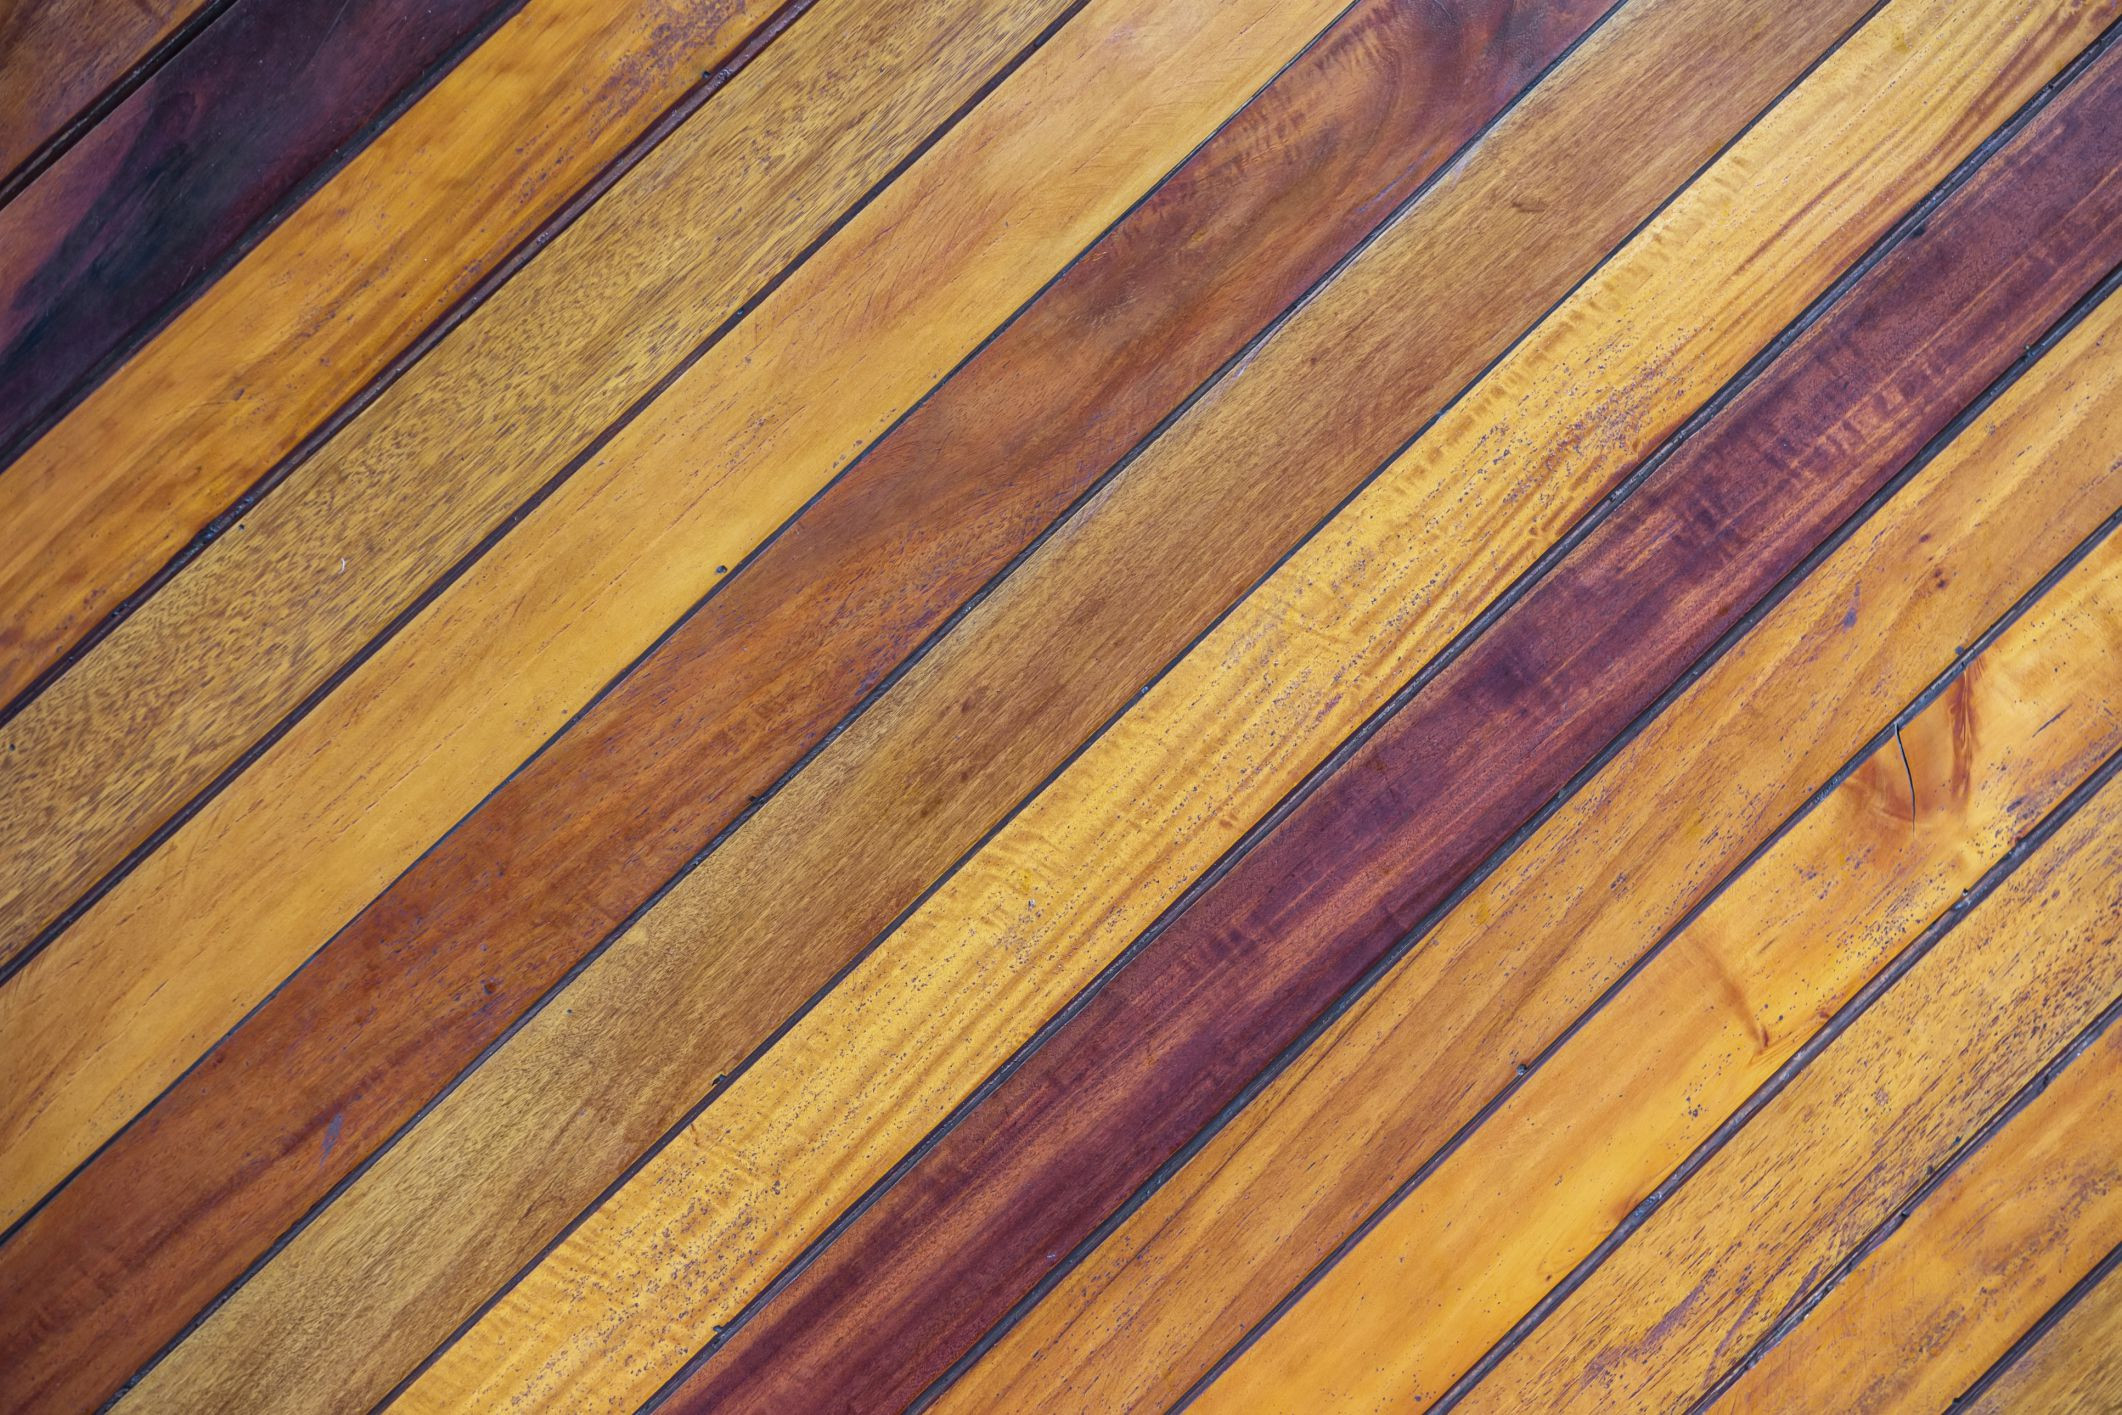 hardwood floor repair austin of subfloor repair and floor leveling techniques intended for uneven wooden flooring 170024909 56a4a1853df78cf7728353ab